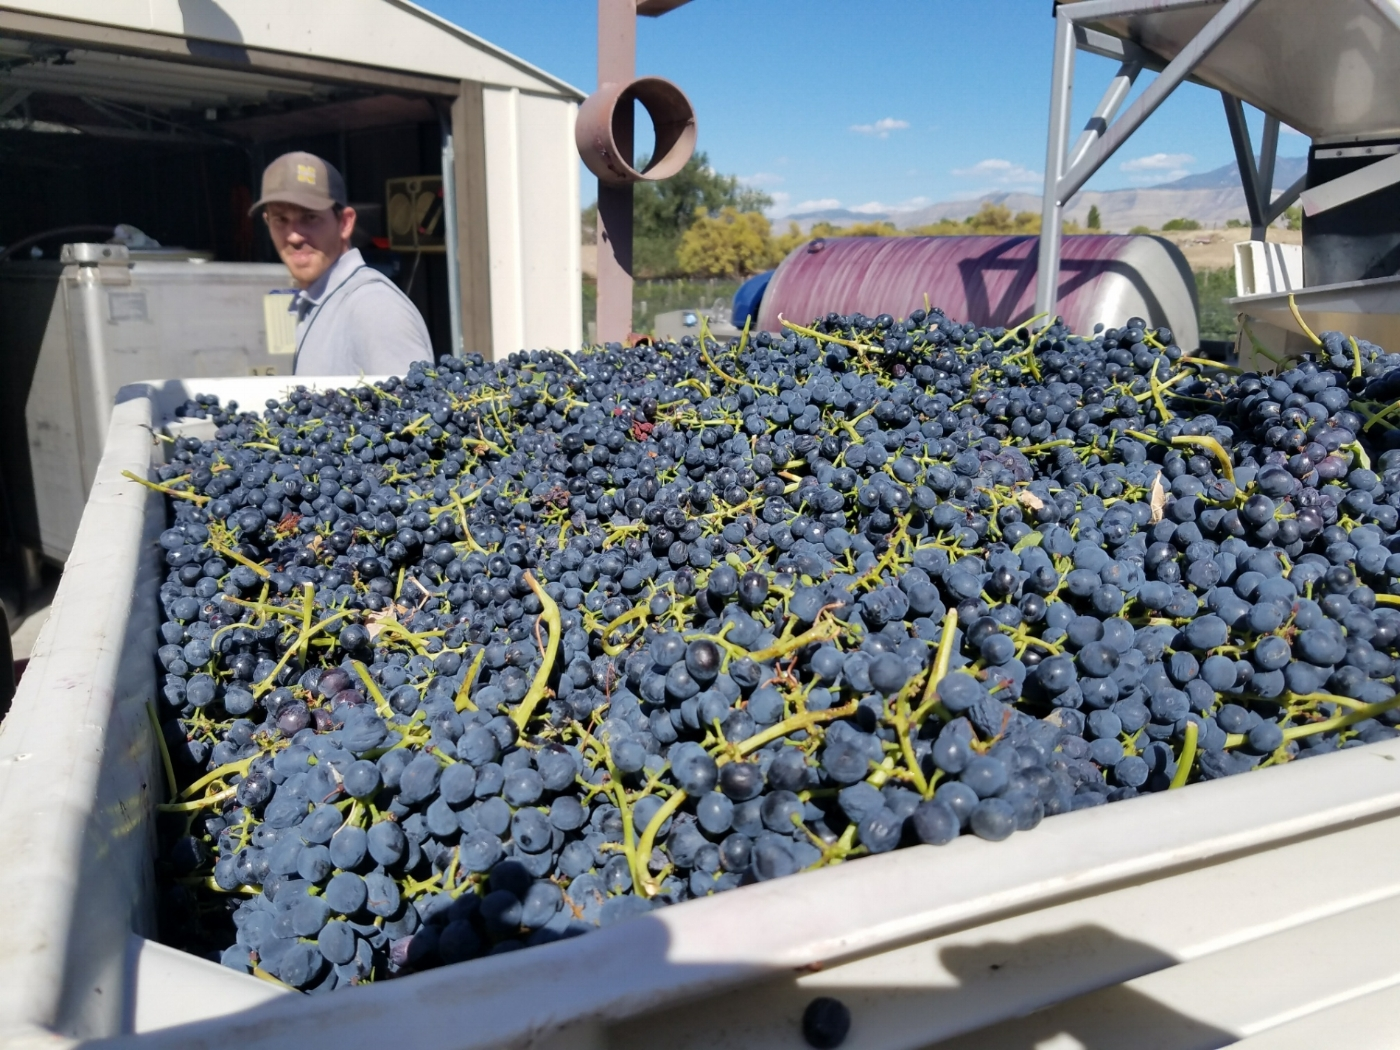 2017 harvest in the Colorado Palisades.  (Photo: Michael Arnsteen)